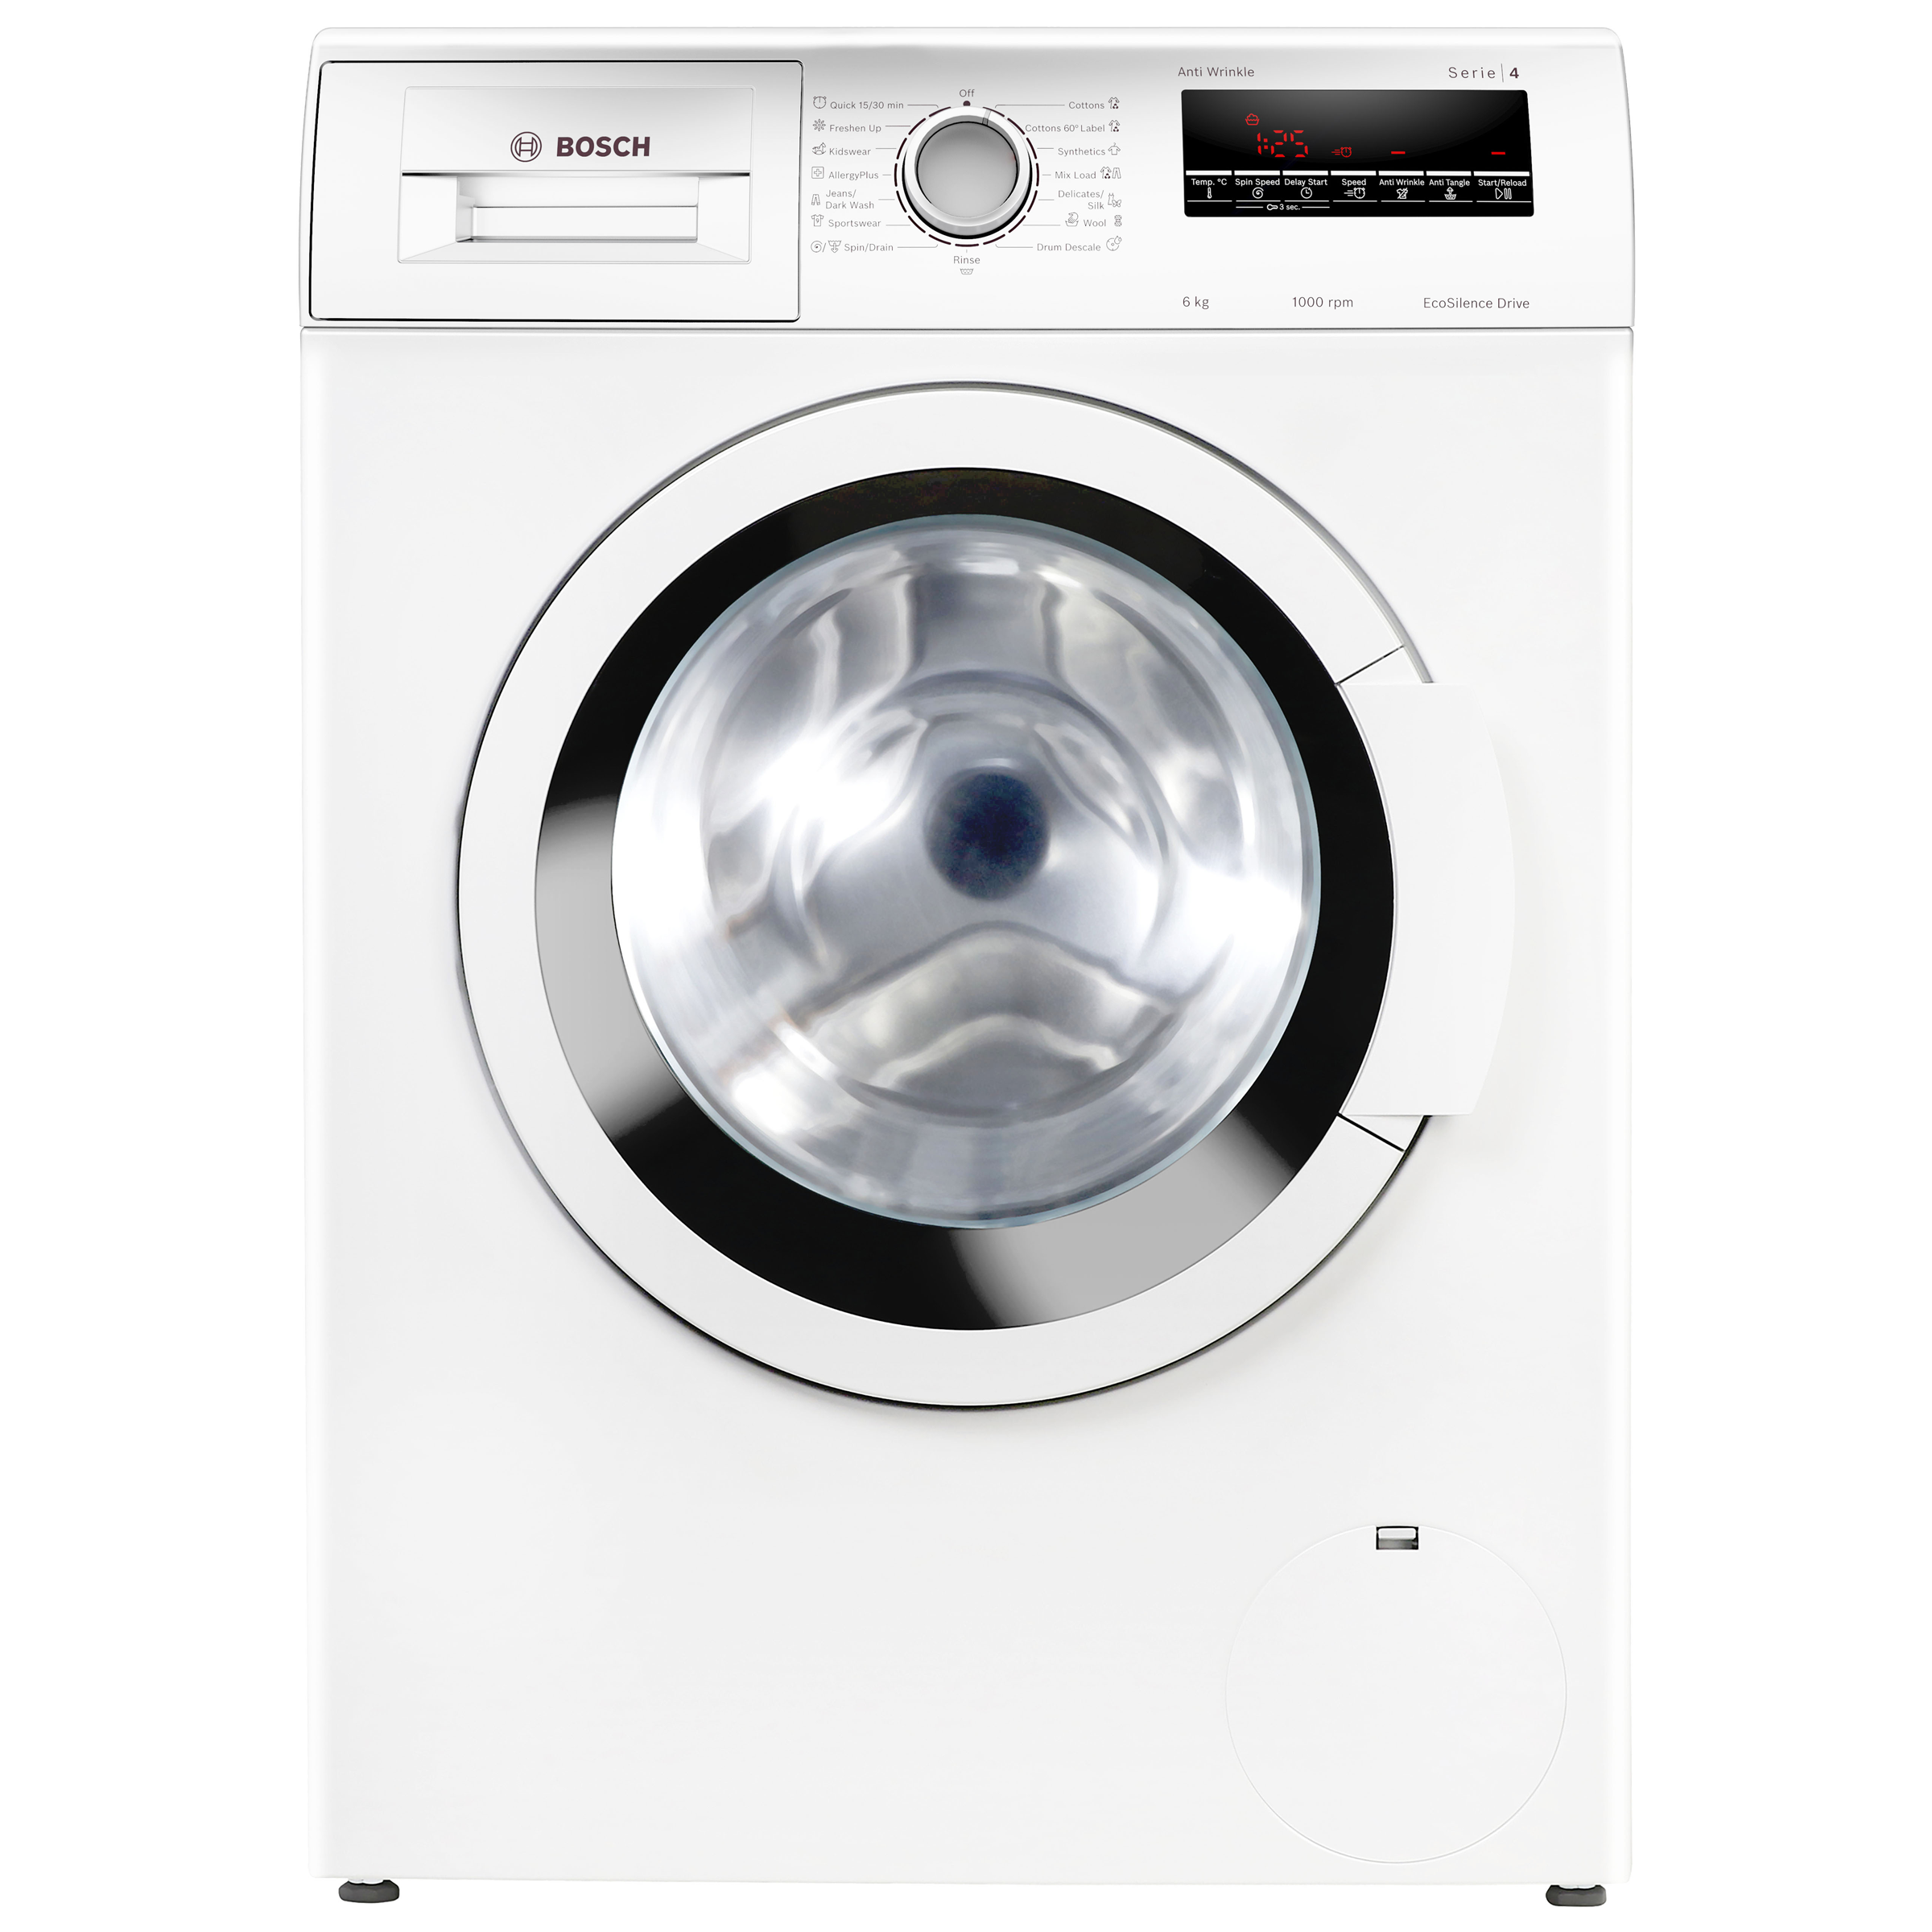 Bosch Serie 4 6 kg 5 Star Fully Automatic Front Load Washing Machine (EcoSilence Drive Motor, WLJ2026WIN, White)_1